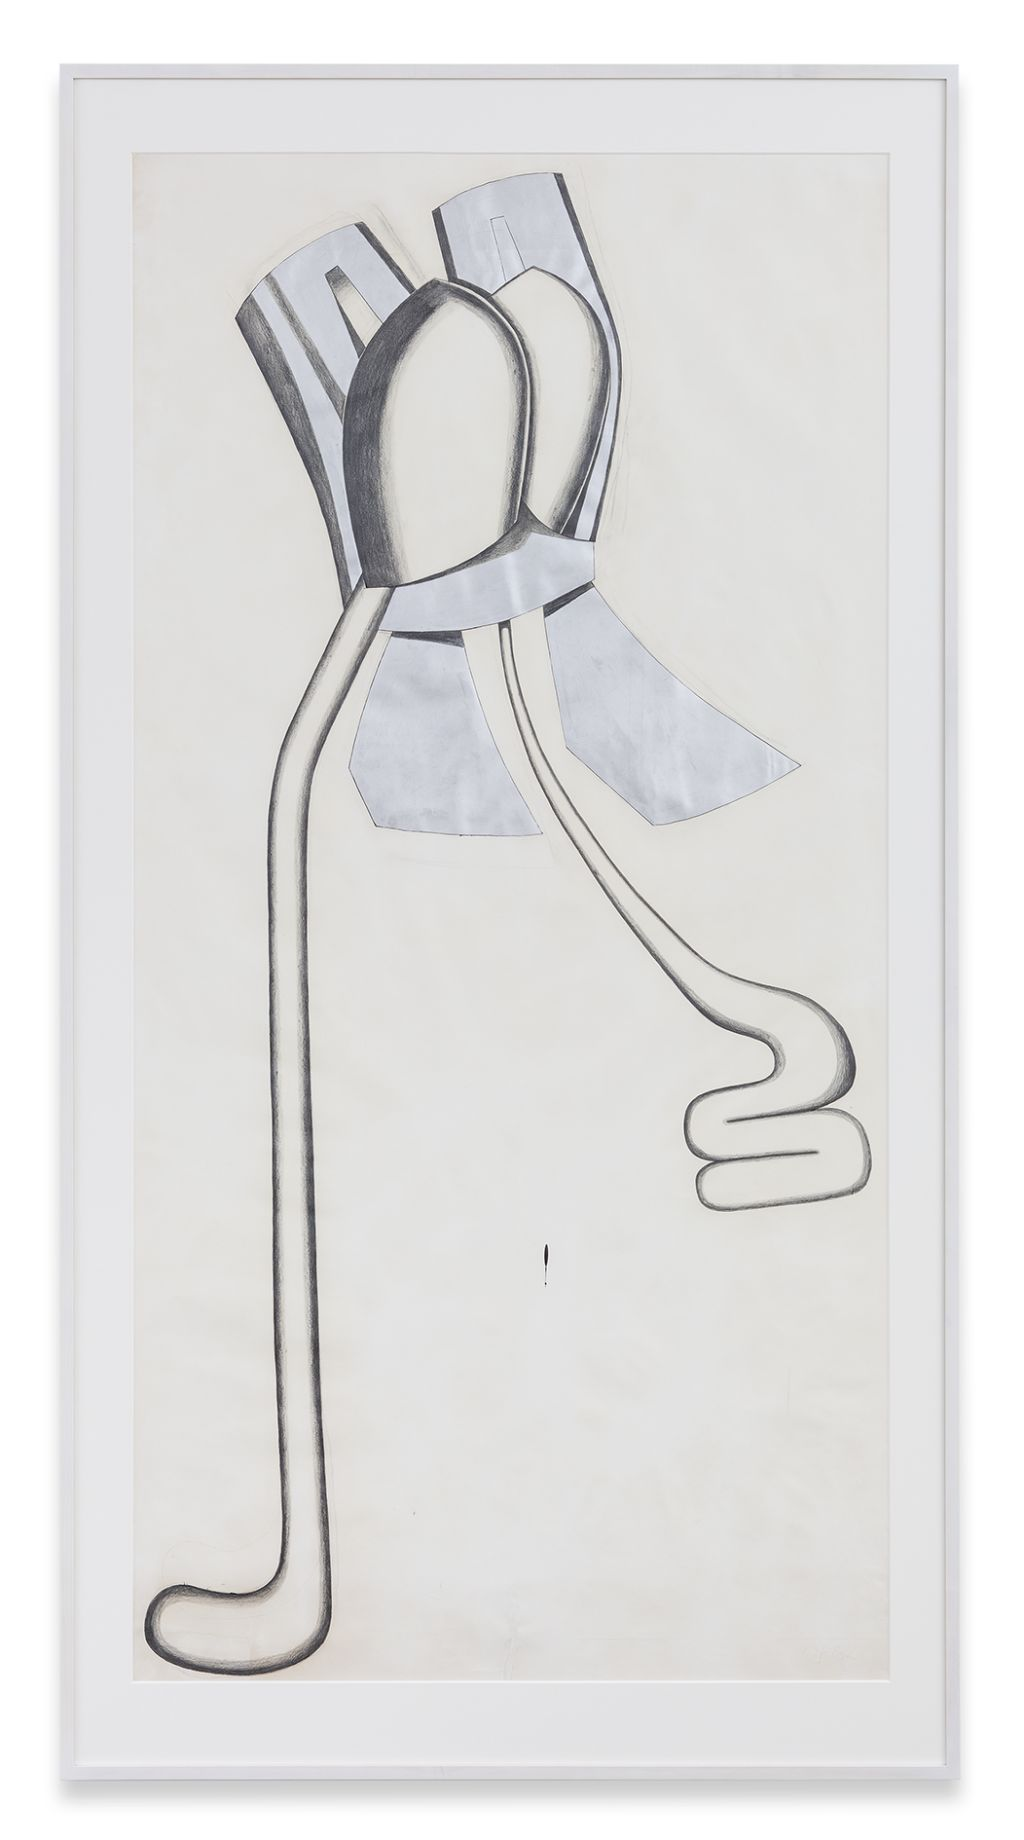 Craig Kauffman: Works from 1962–1964 in Dialogue with Francis Picabia and Marcel Duchamp – Group Exhibition – Berlin